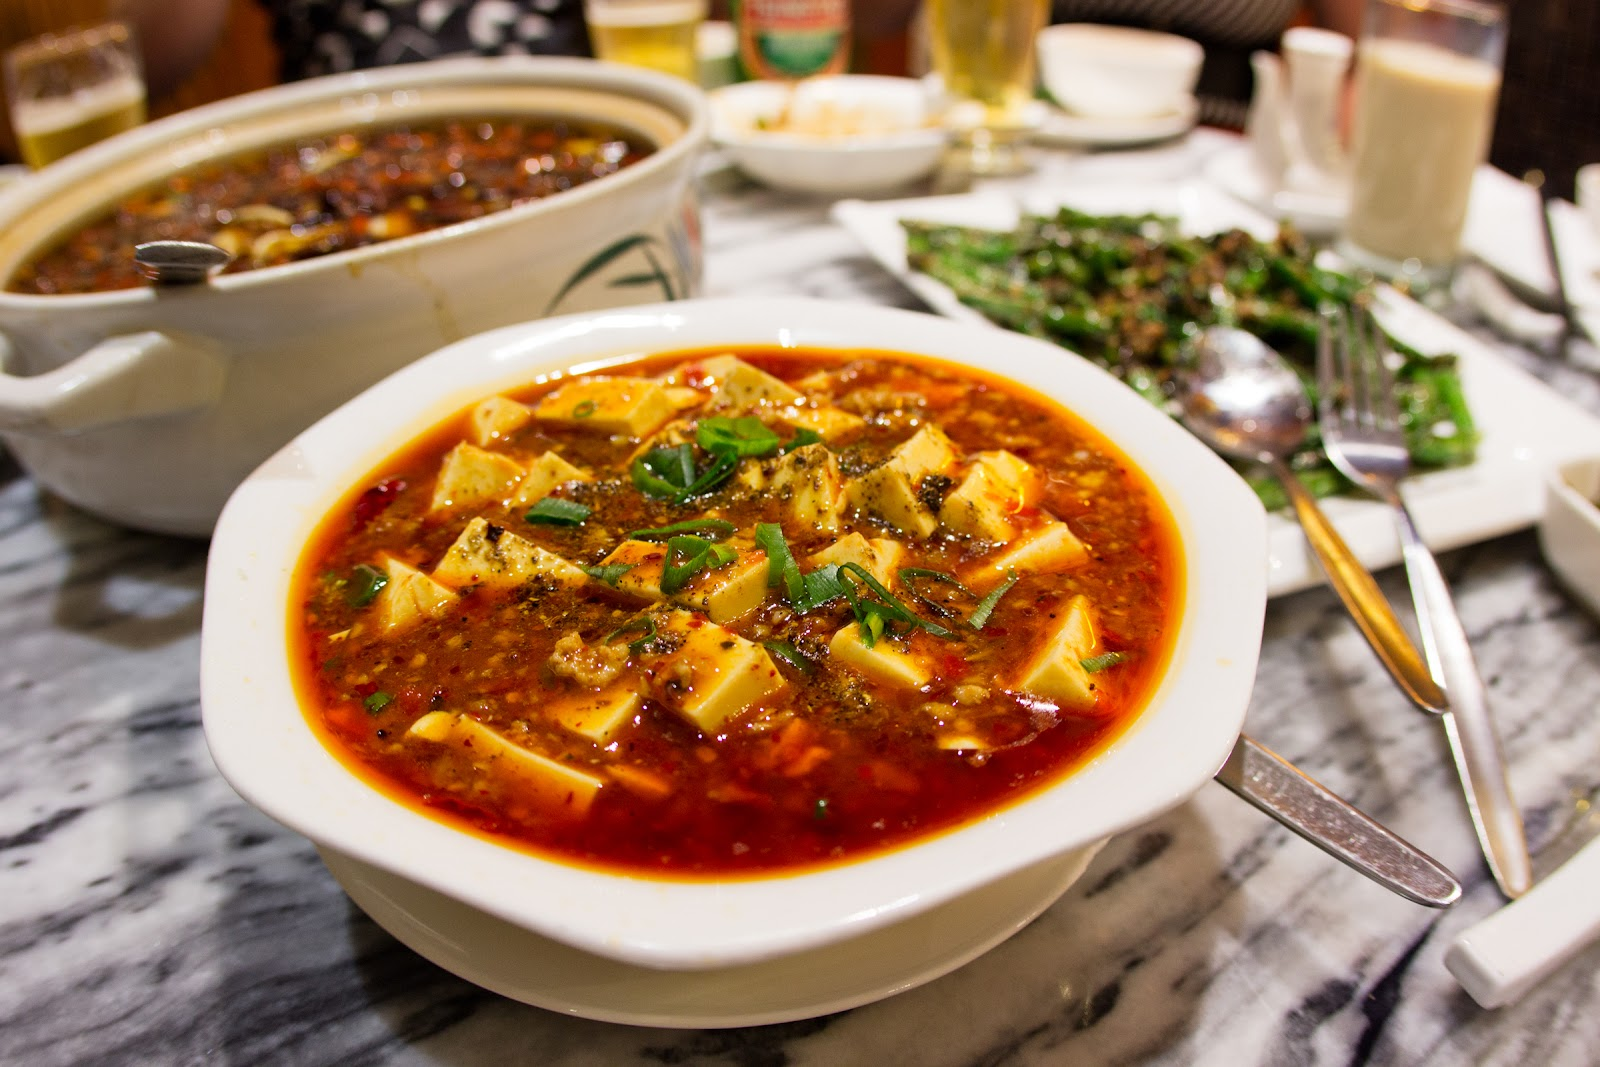 Mapo tofu (bean curd with beef mince in spicy sauce) $16.80